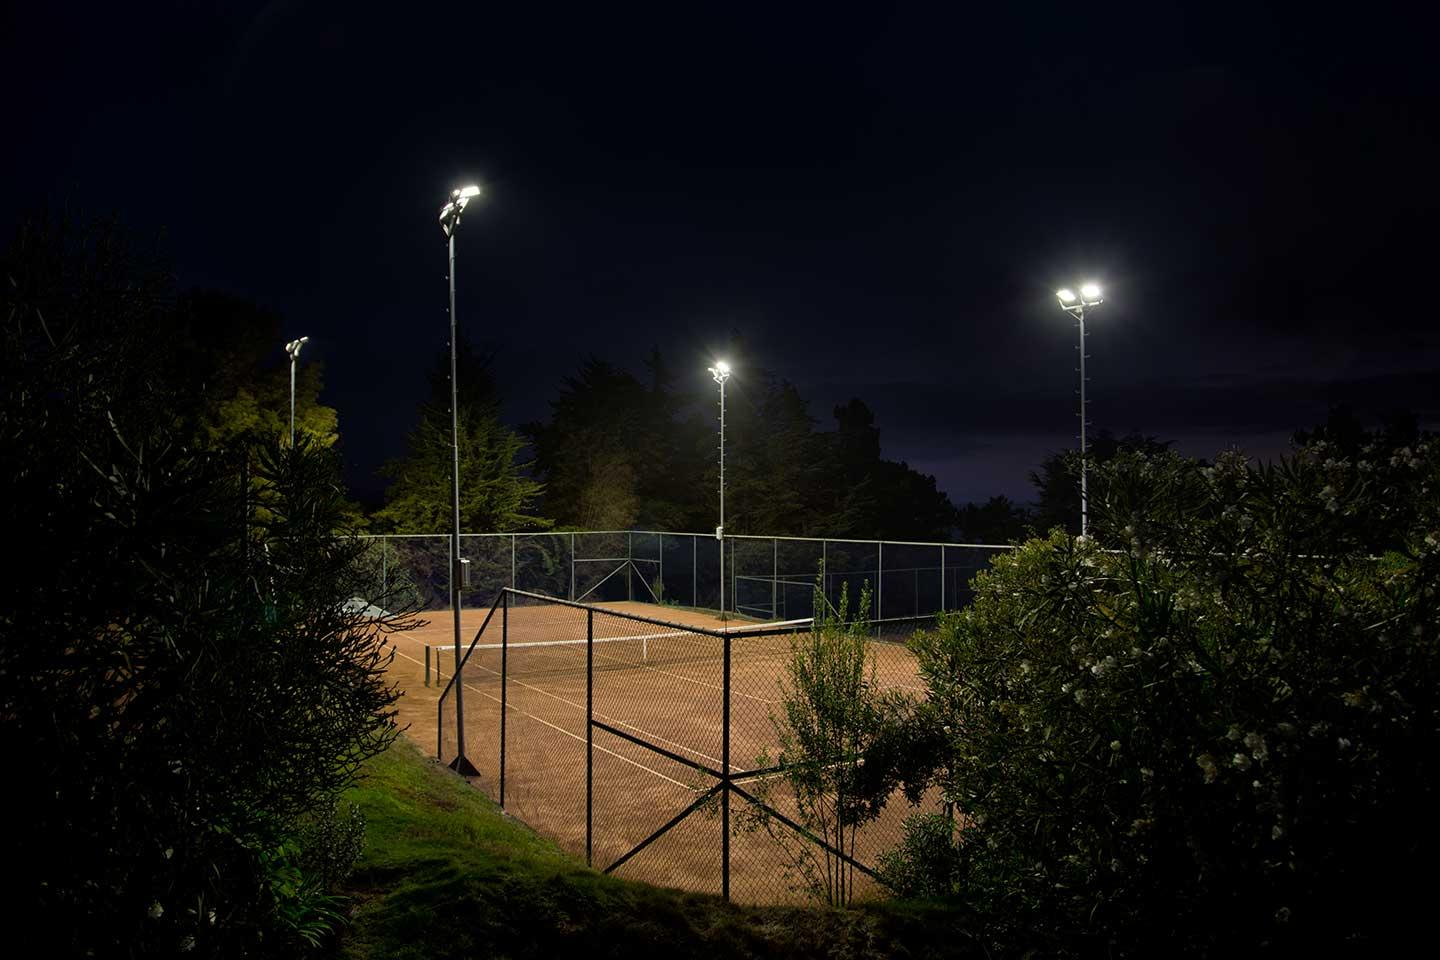 Schréder sports lighting solution provides perfect visibility on the tennis courts at Cantagua club house with zero light spill for residents